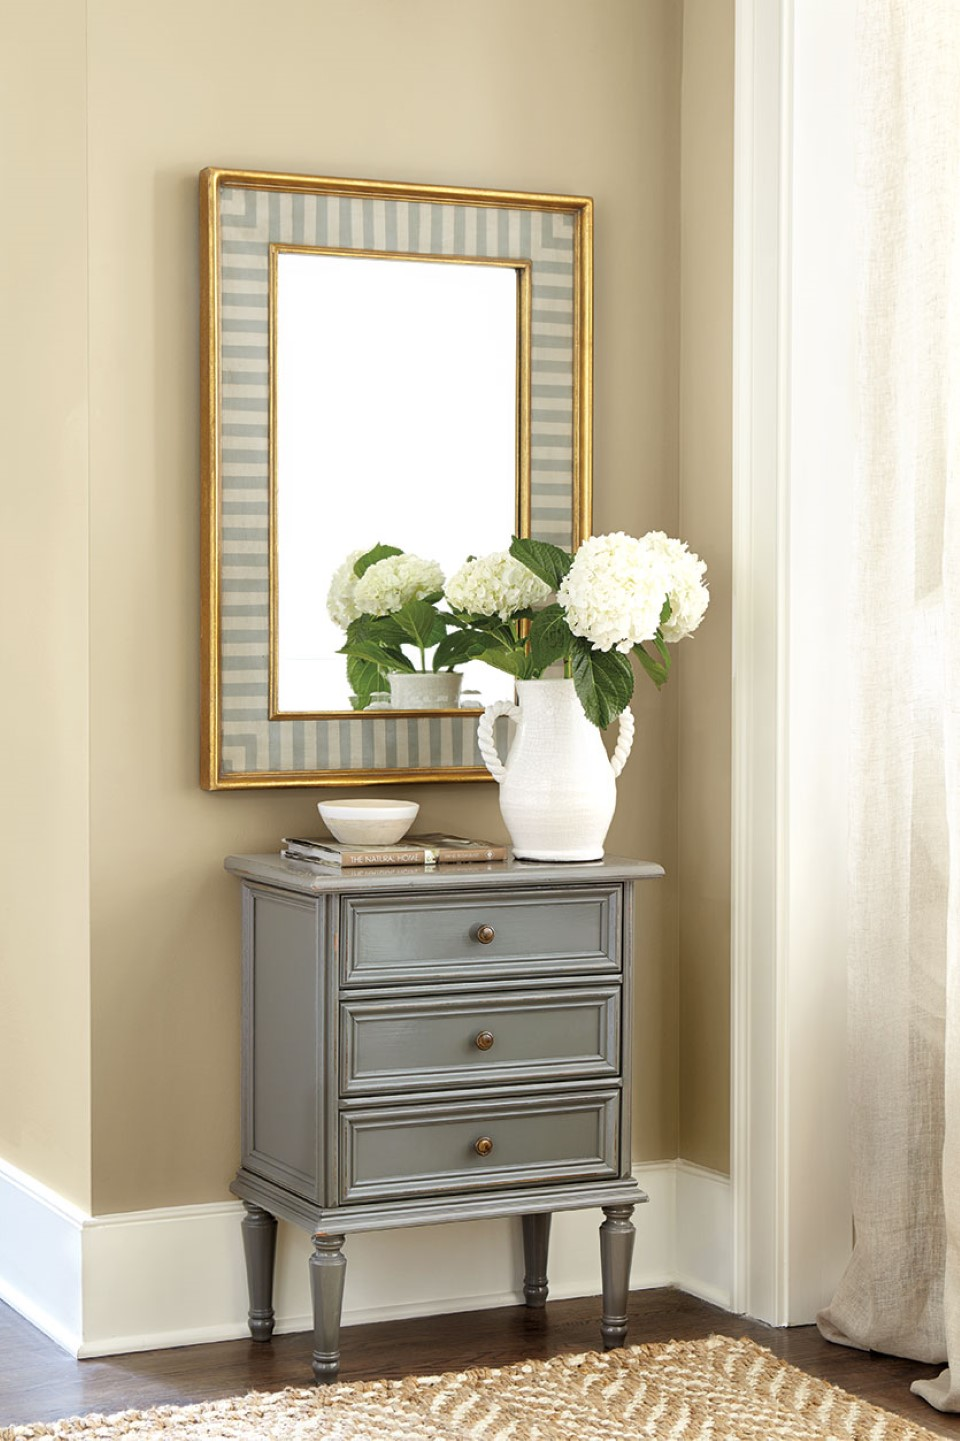 Small Console Table For Hallway Perfect Icon To Fill The